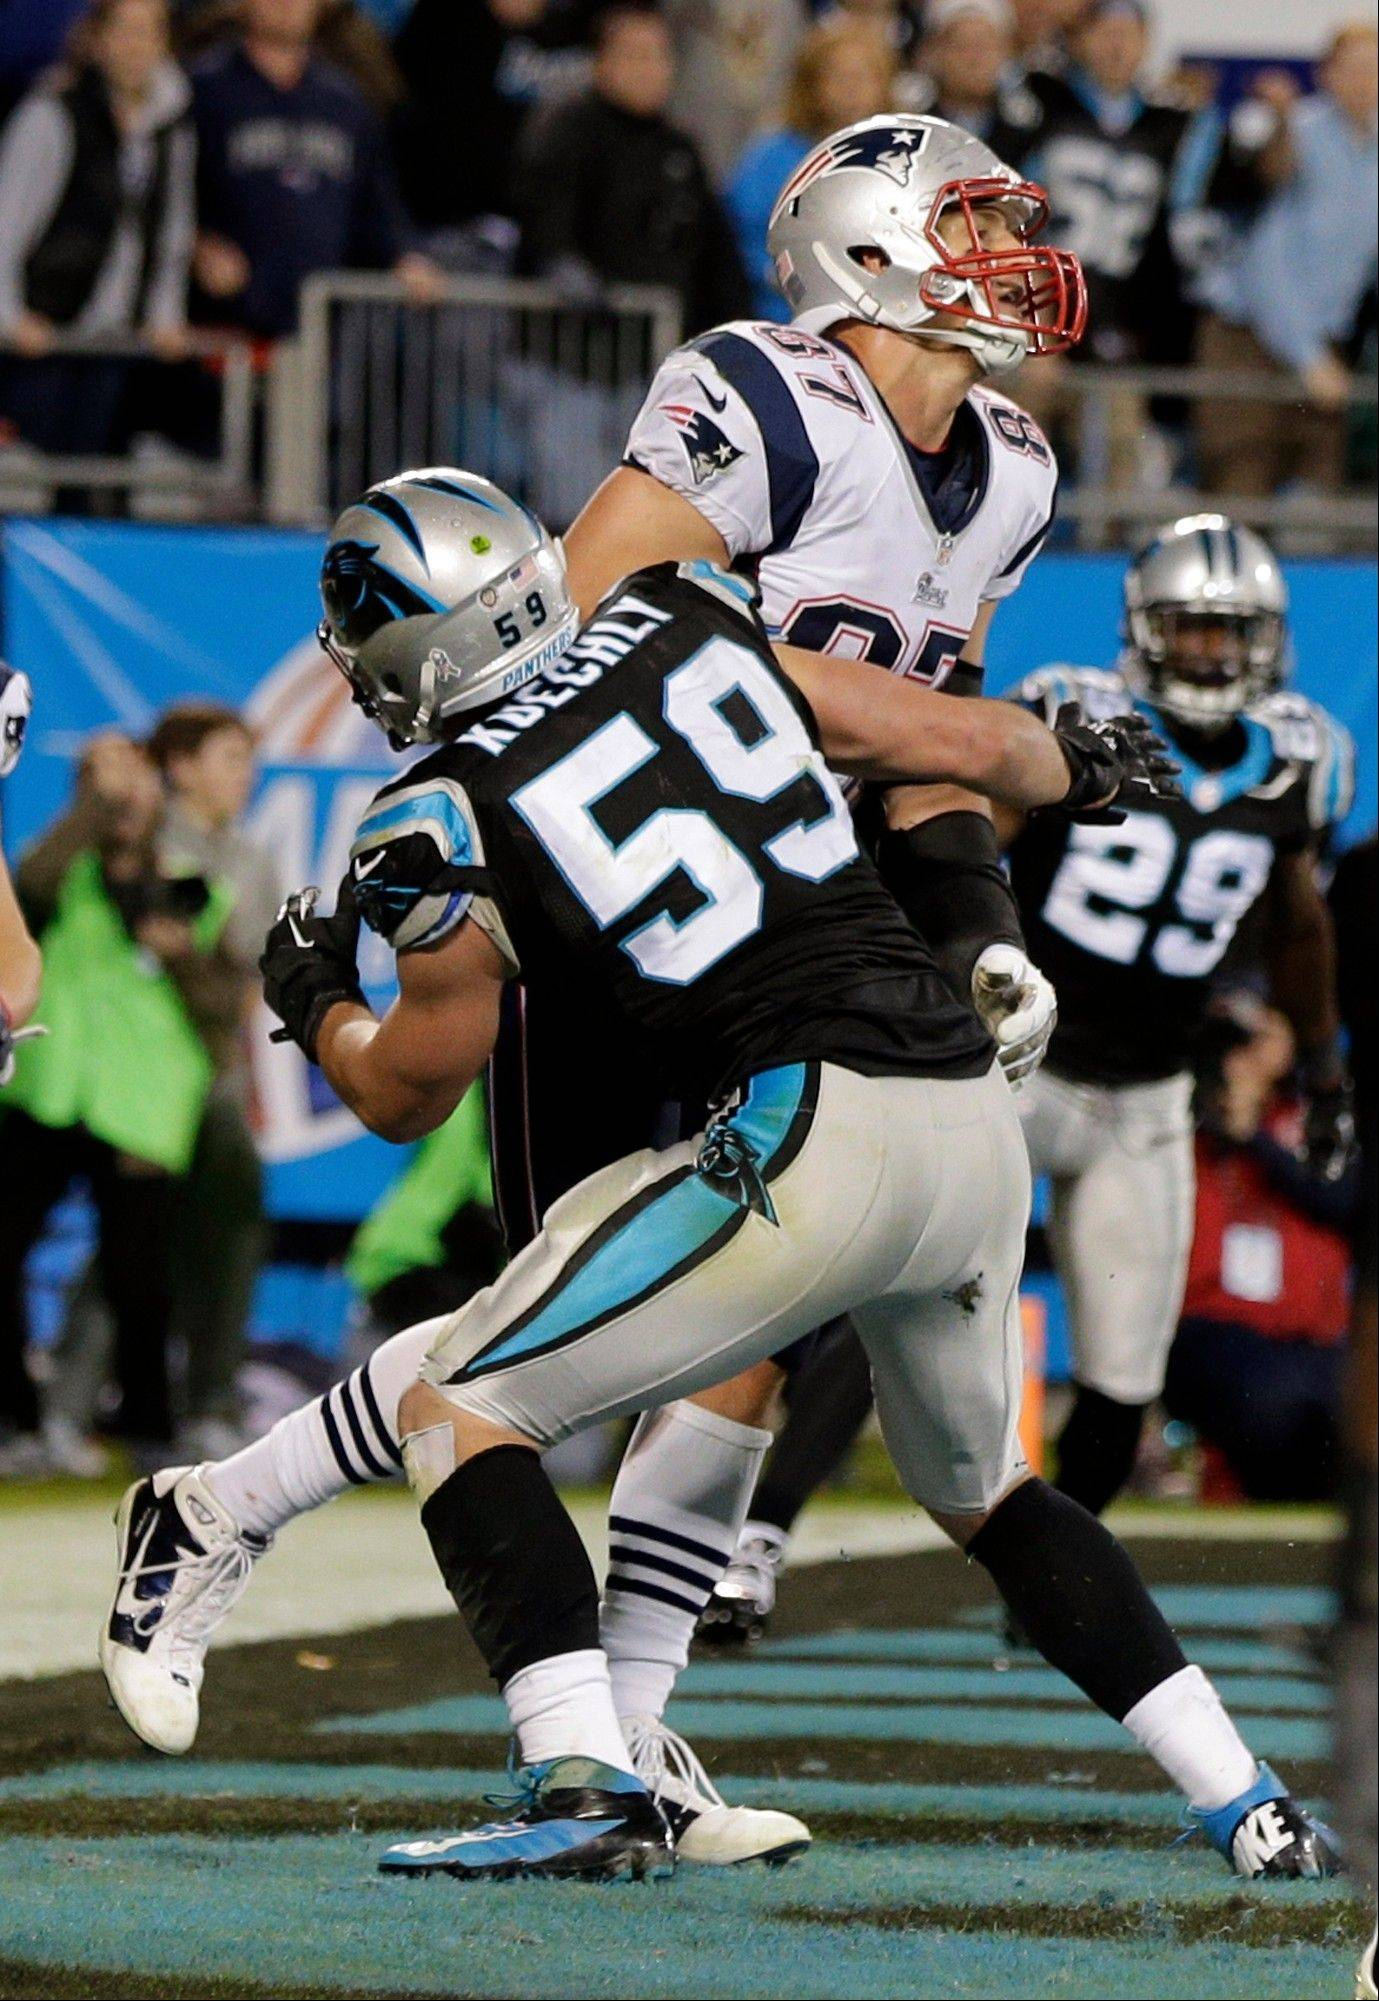 The Panthers� Luke Kuechly blocks the Patriots� Rob Gronkowski on the final play of the game Monday in Charlotte, N.C. A flag was thrown, but officials later decided no penalty had occurred.